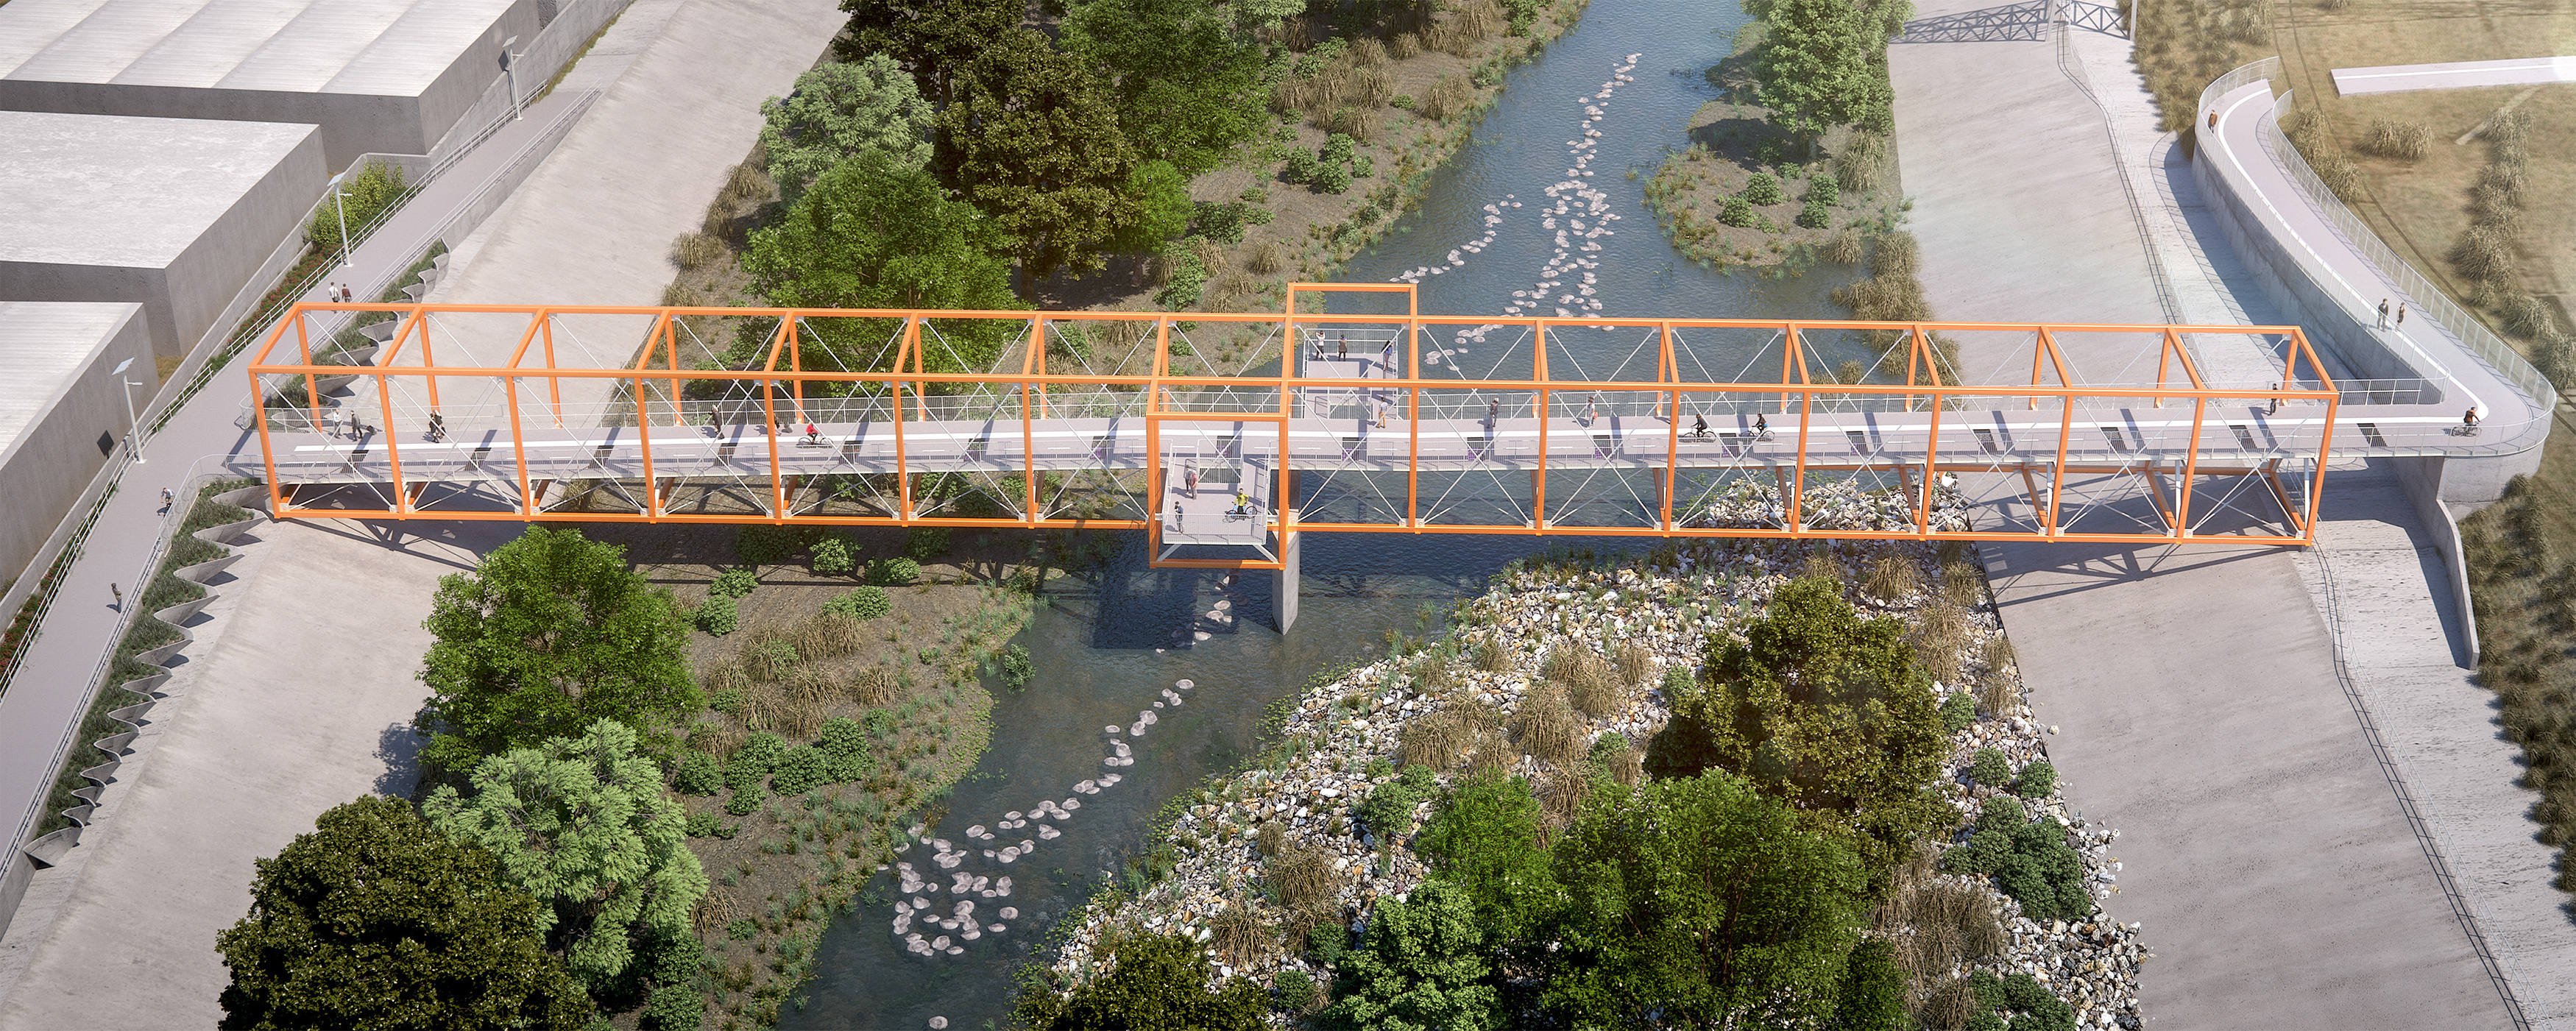 A rendering of the orange bridge that will connect Elysian Park and Cypress Park over the LA River.